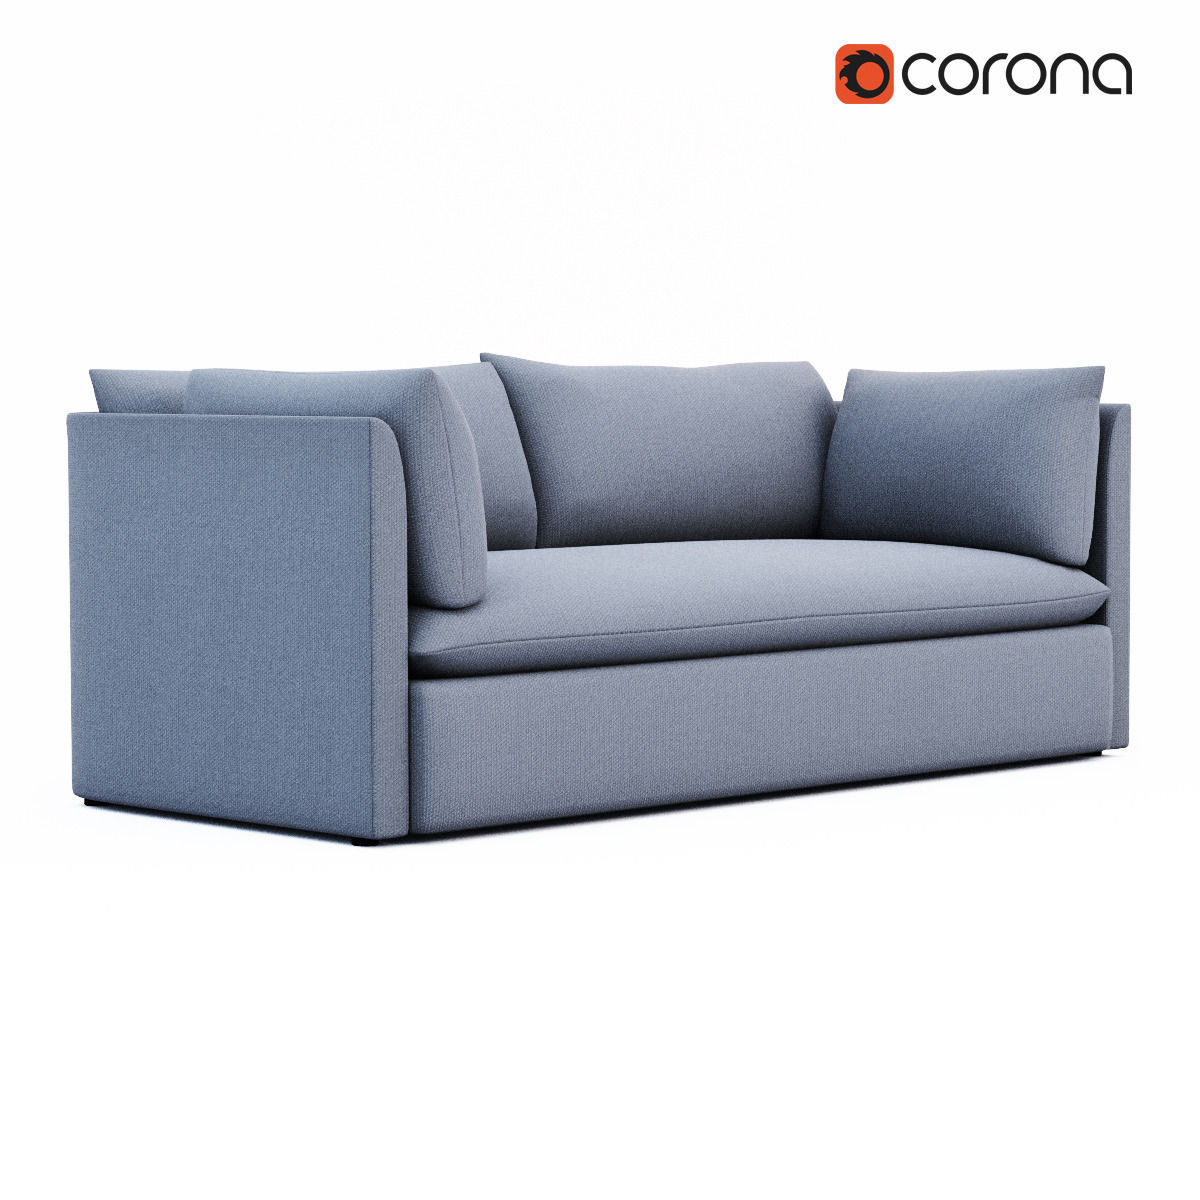 Shelter Sofa West Elm Shelter Couch Sofa Thesofa